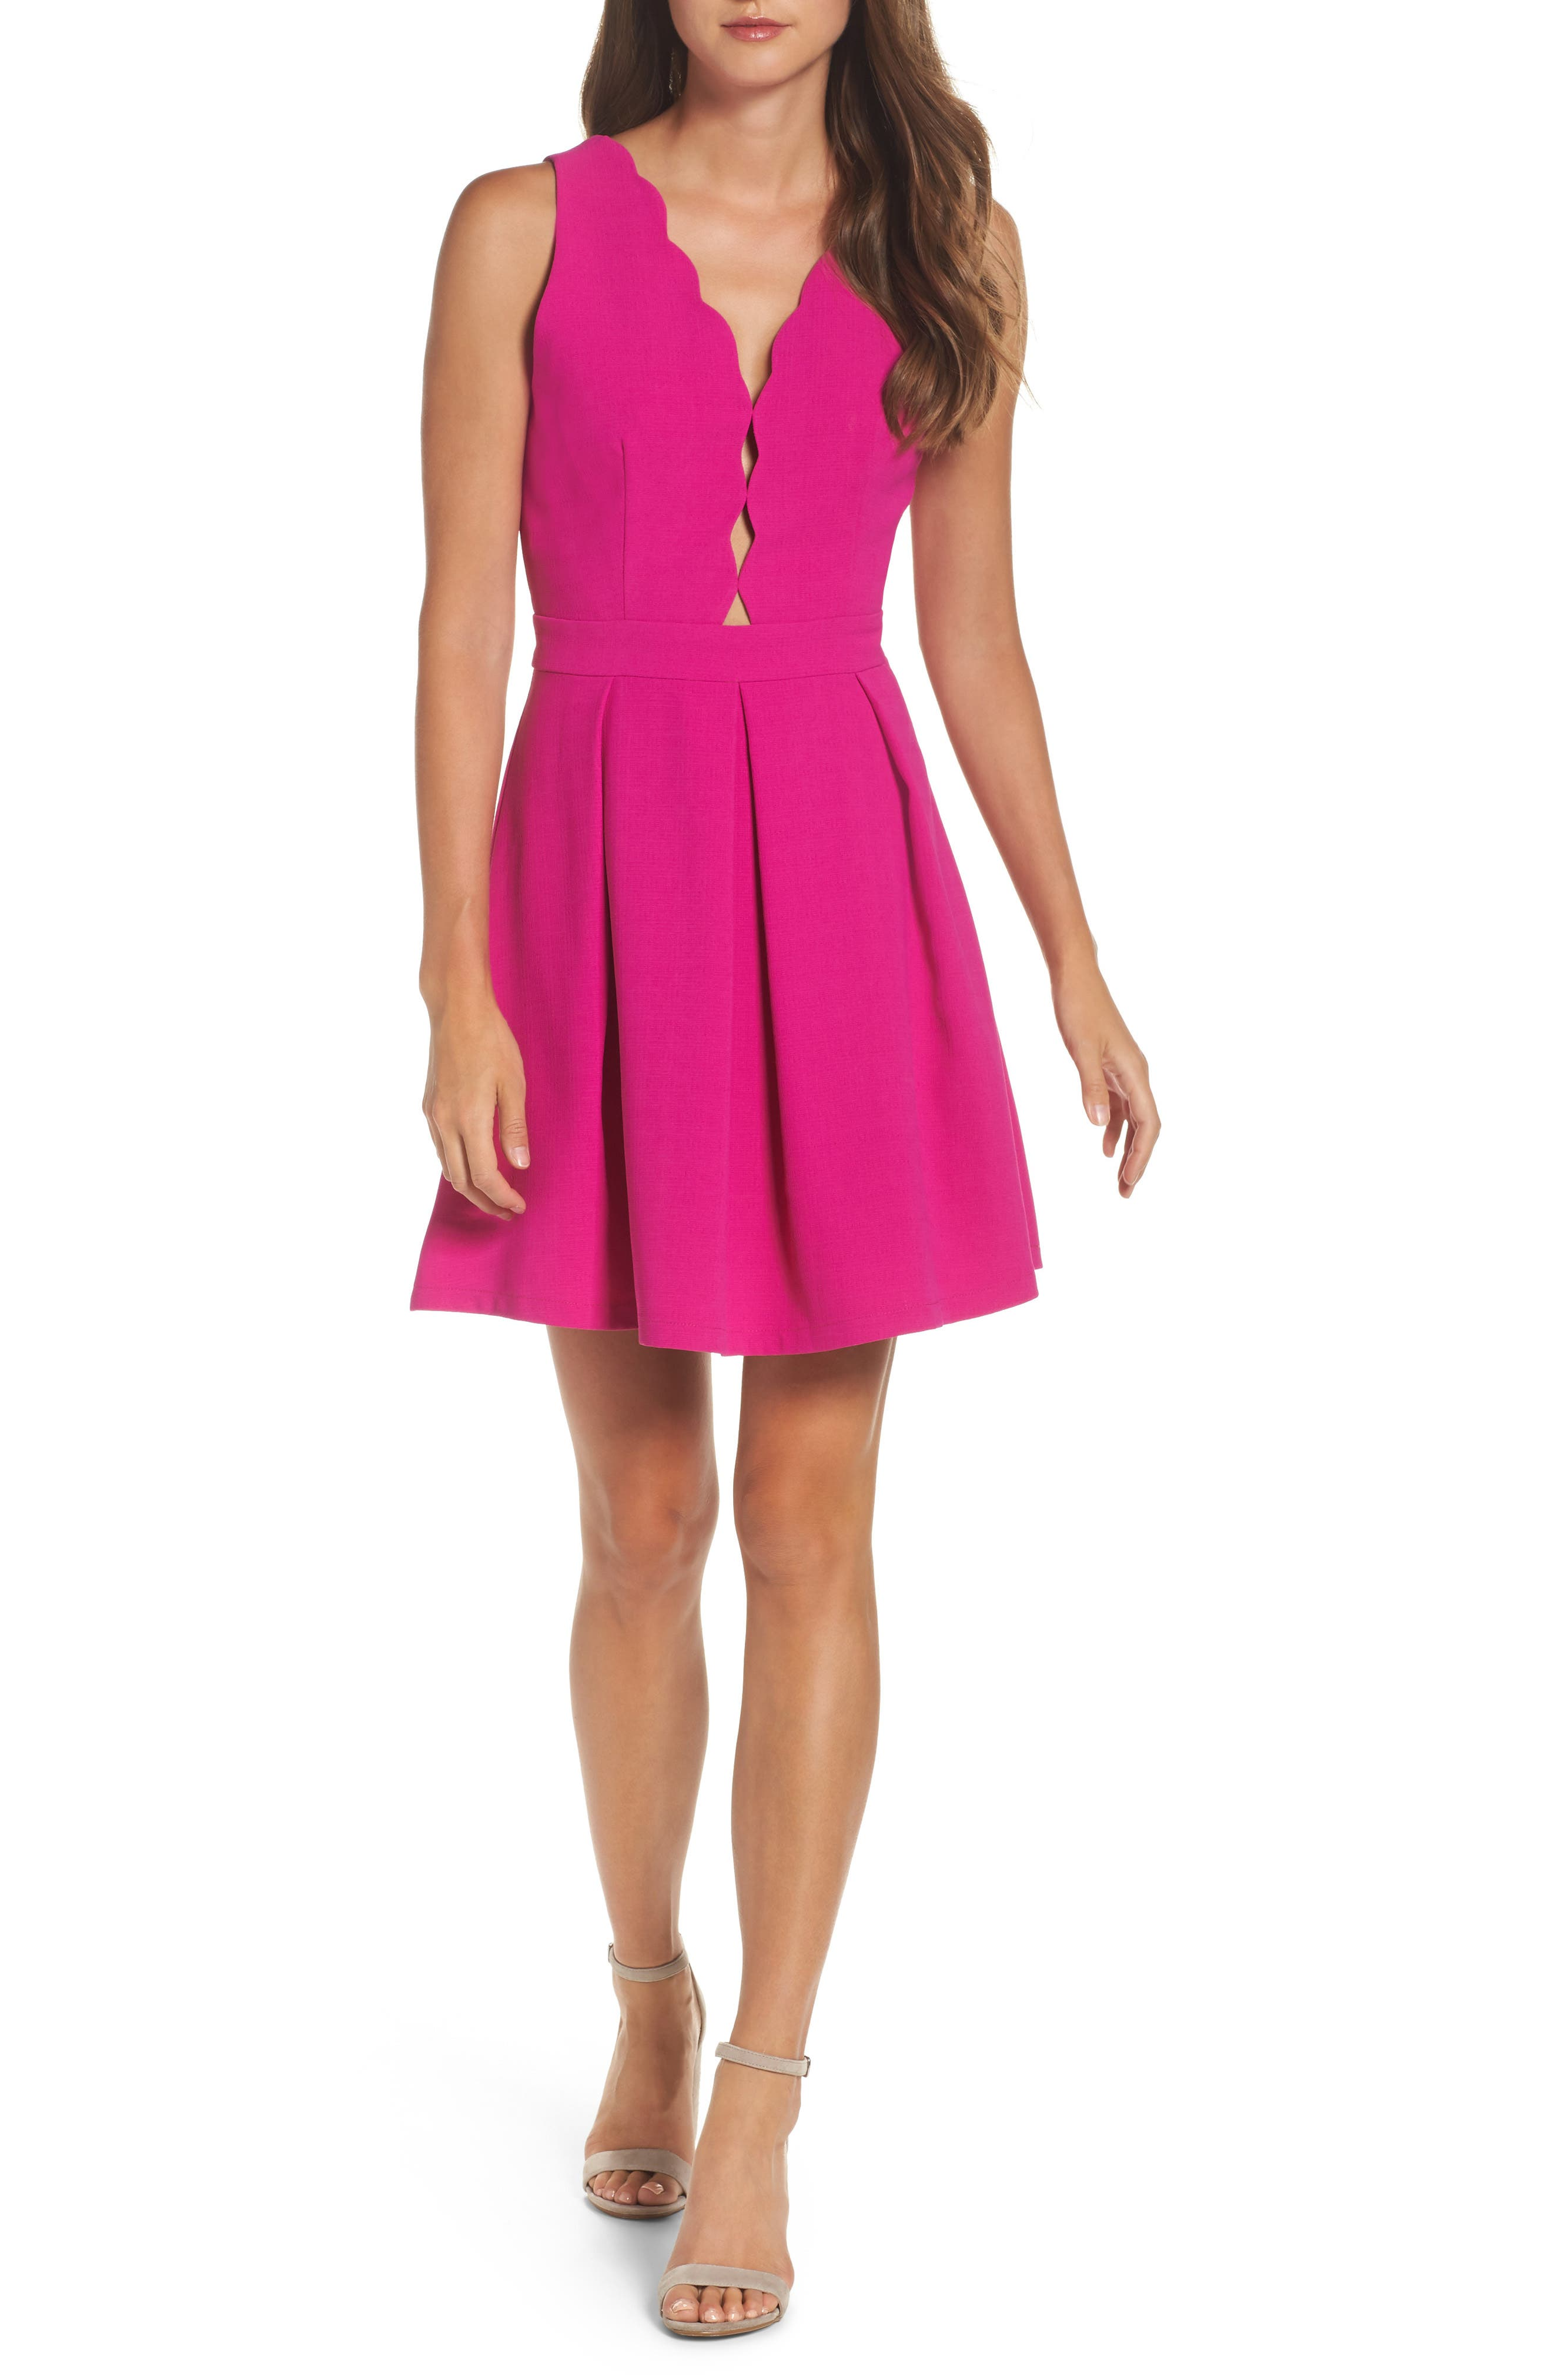 Adelyn Rae Scalloped Fit & Flare Dress